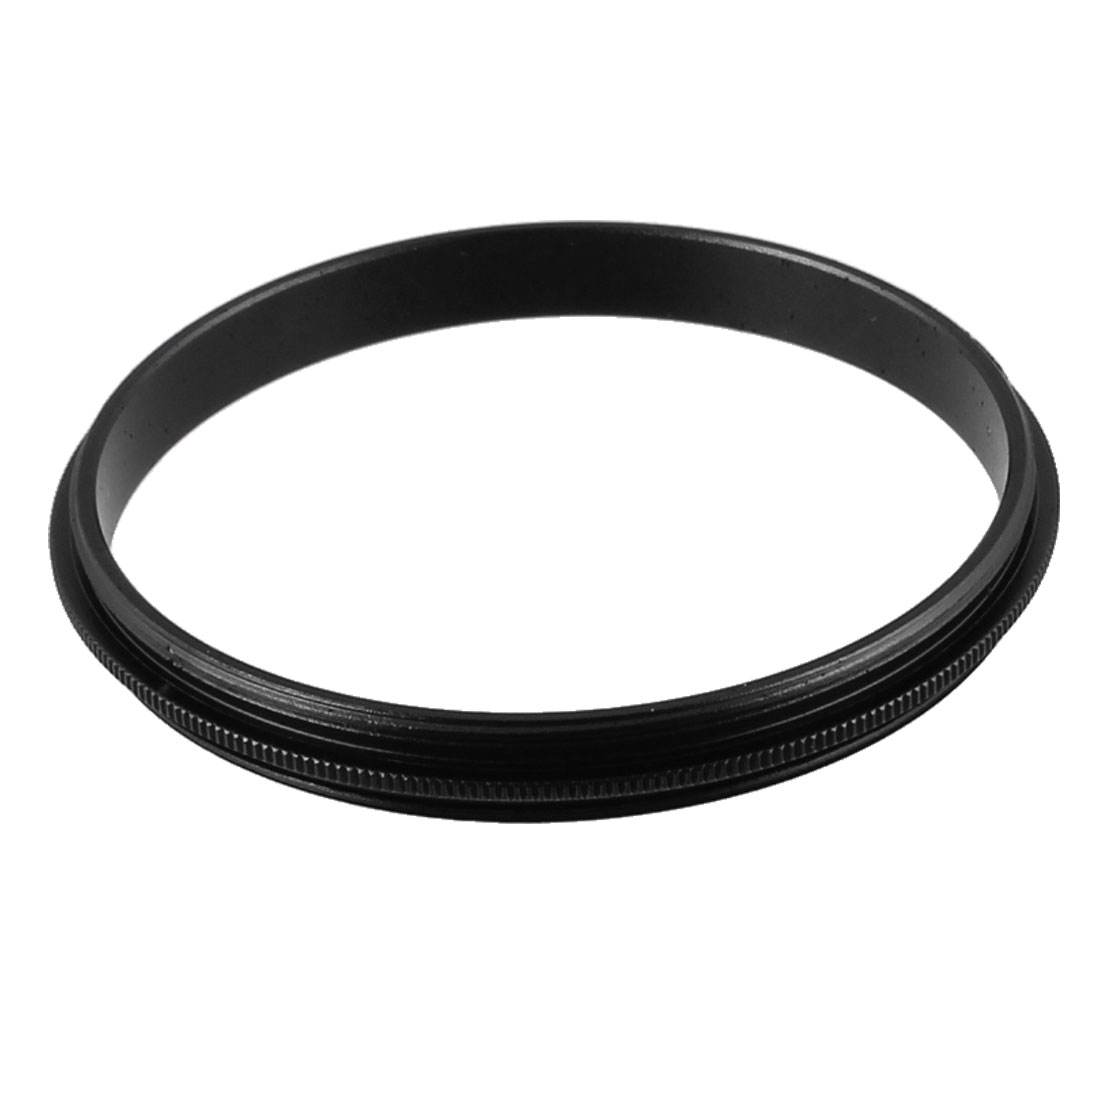 52mm Male to Male Metal Step Ring Adapter Black for Camera